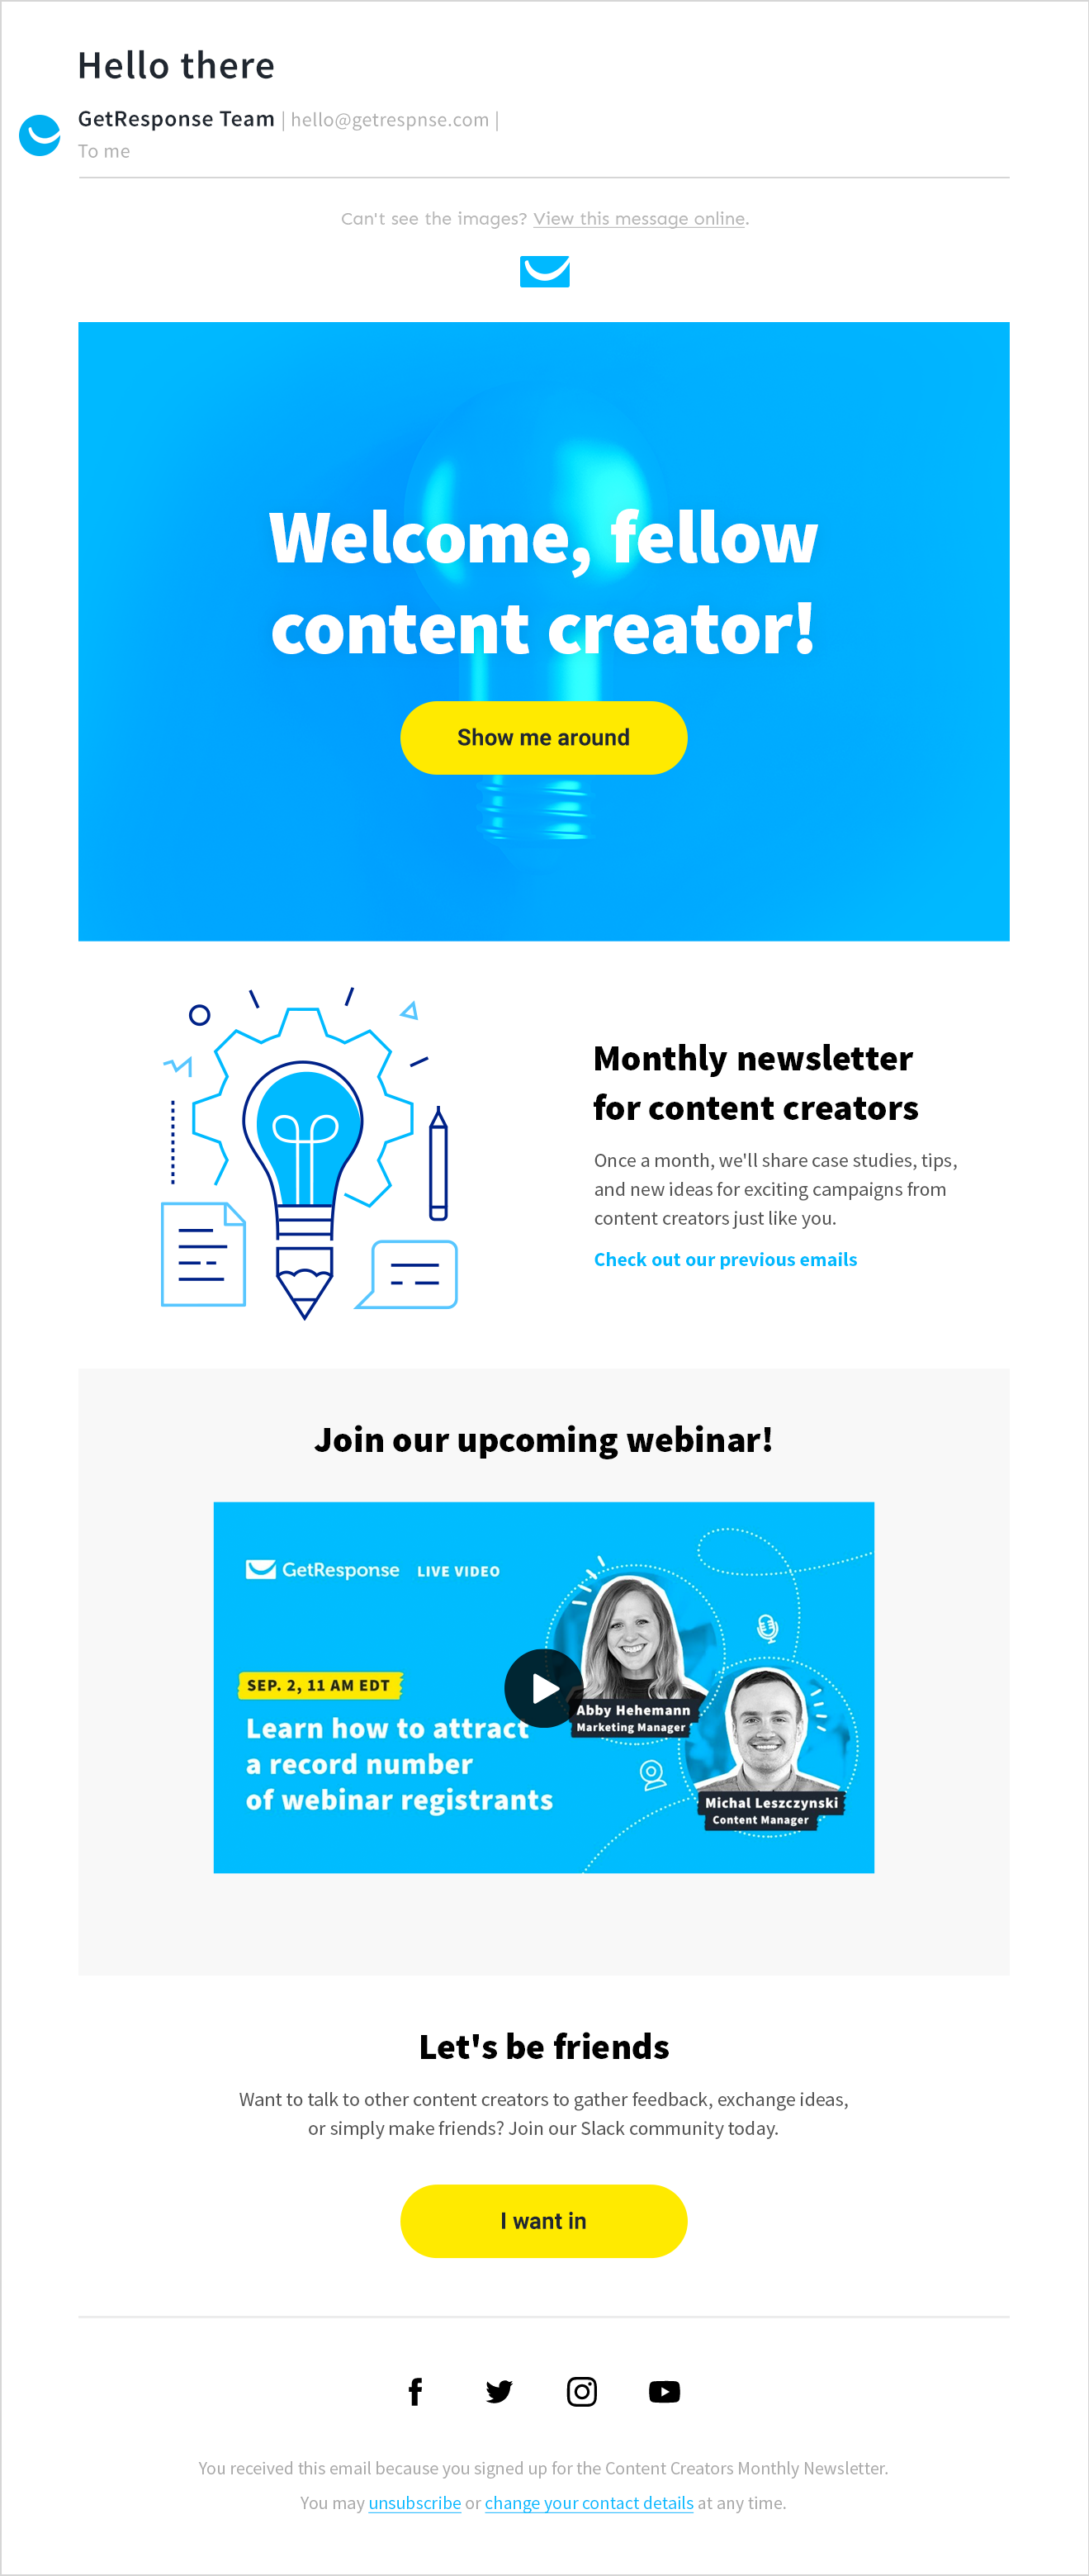 Example of an email template designed for our imaginary content creators newsletter.